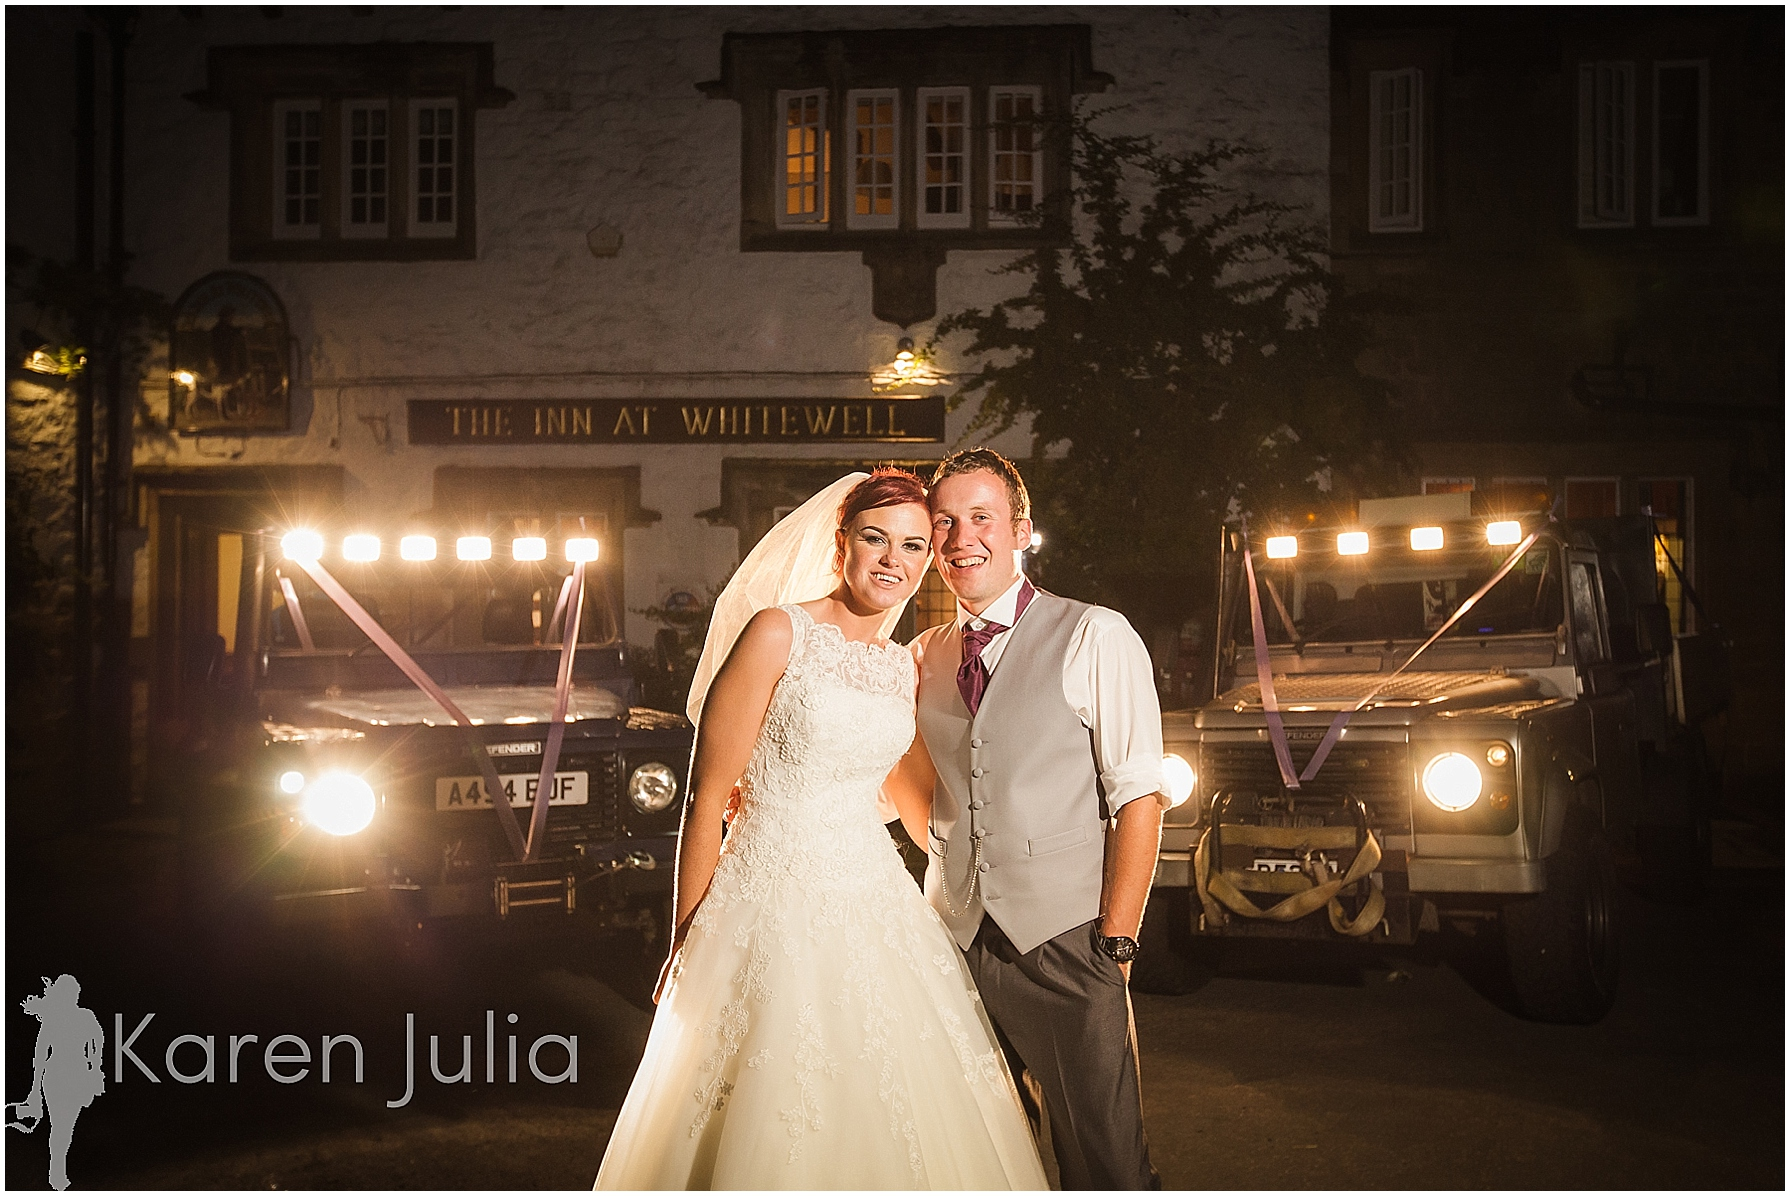 The Inn at Whitewell Wedding Photography with landrover defender